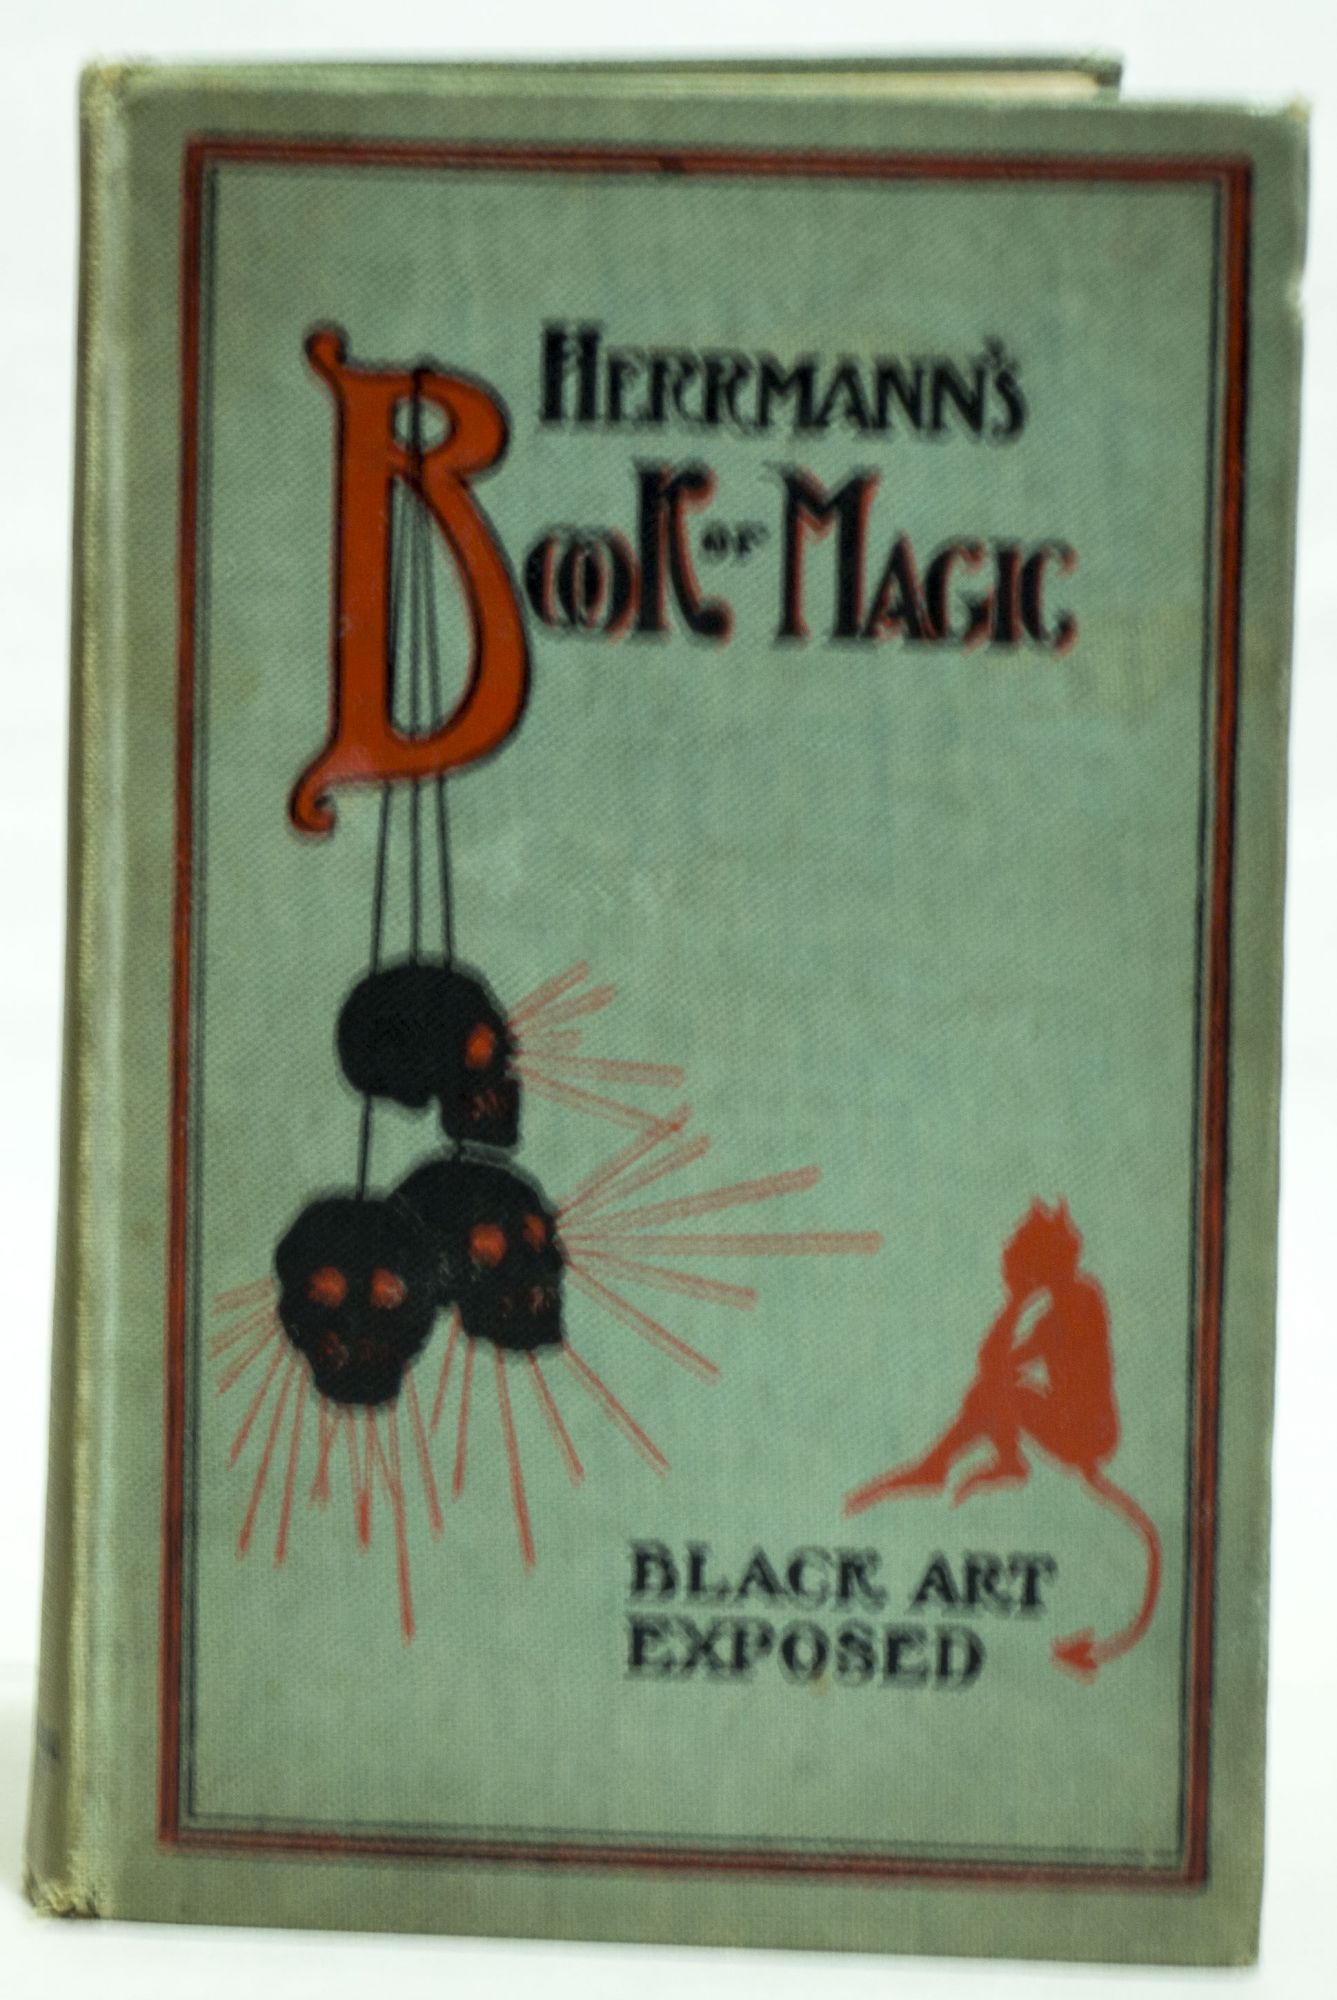 Hermann's Book of Magic Black Art Fully Exposed A Complete and Practical Guide to Drawing-Room and Stage Magic for Professionals and Amateurs, Including a Complete Exposure of the Black Art